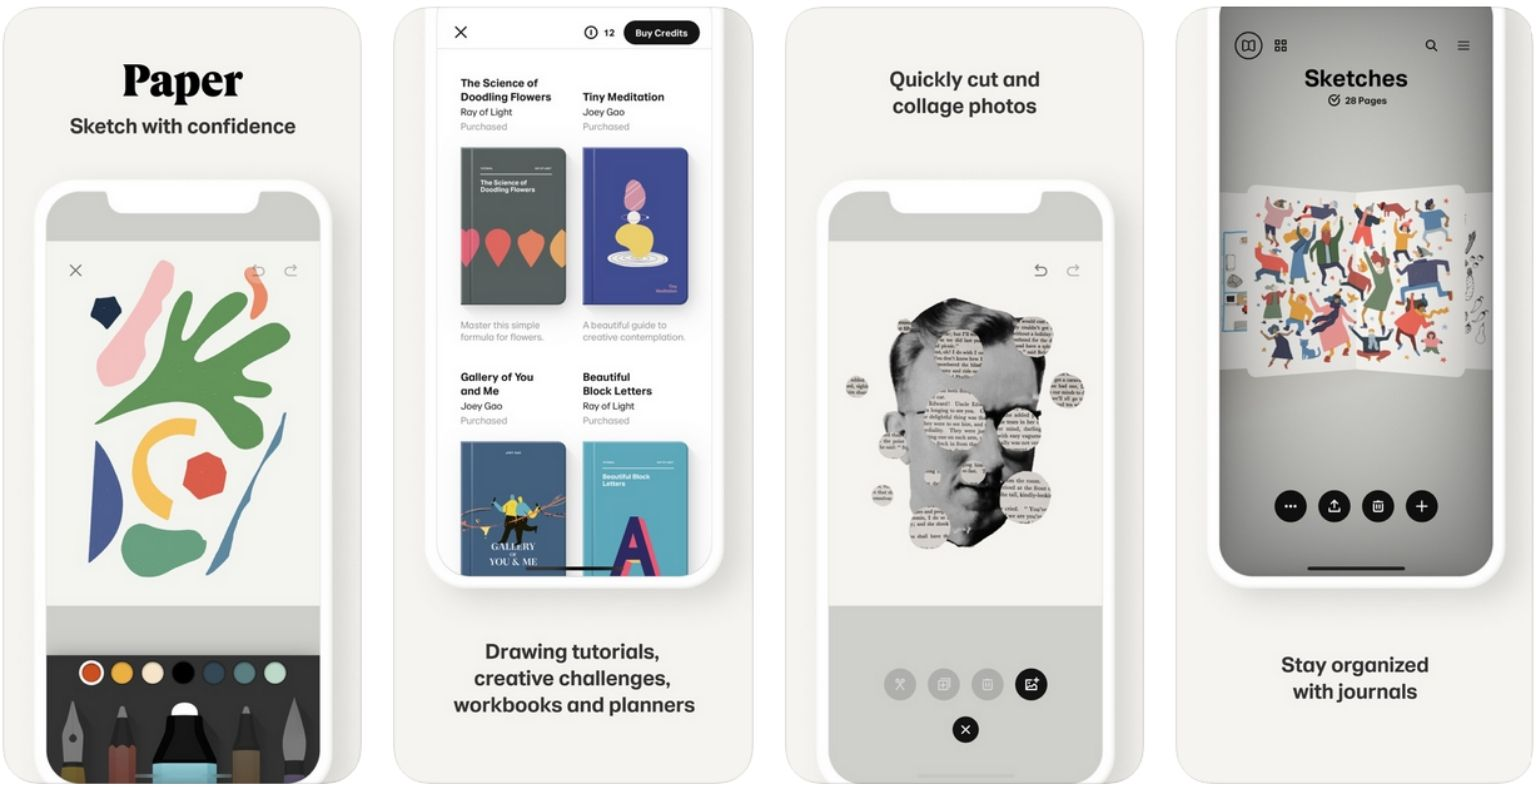 Meilleures applications pour Architectes - Paper